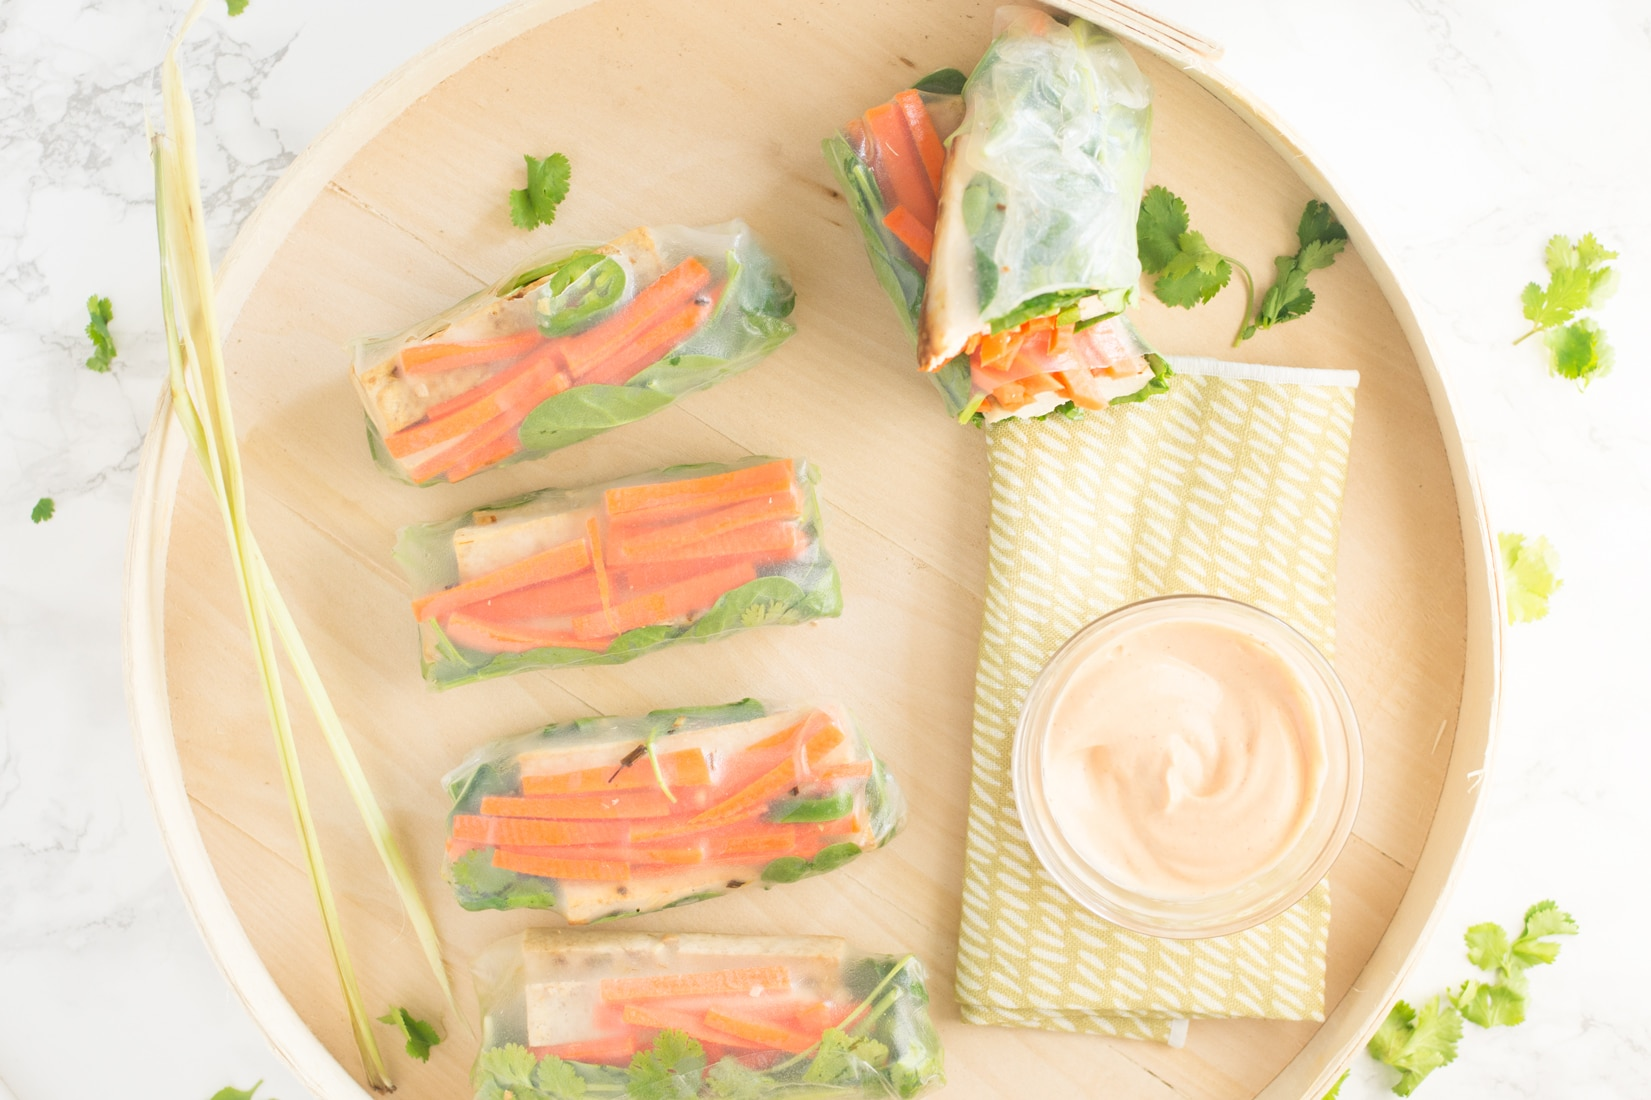 Banh Mi Spring Rolls with Lemongrass Tofu -- Make these spring rolls for a healthy lunch on the go that's naturally vegan and gluten free - mindfulavocado